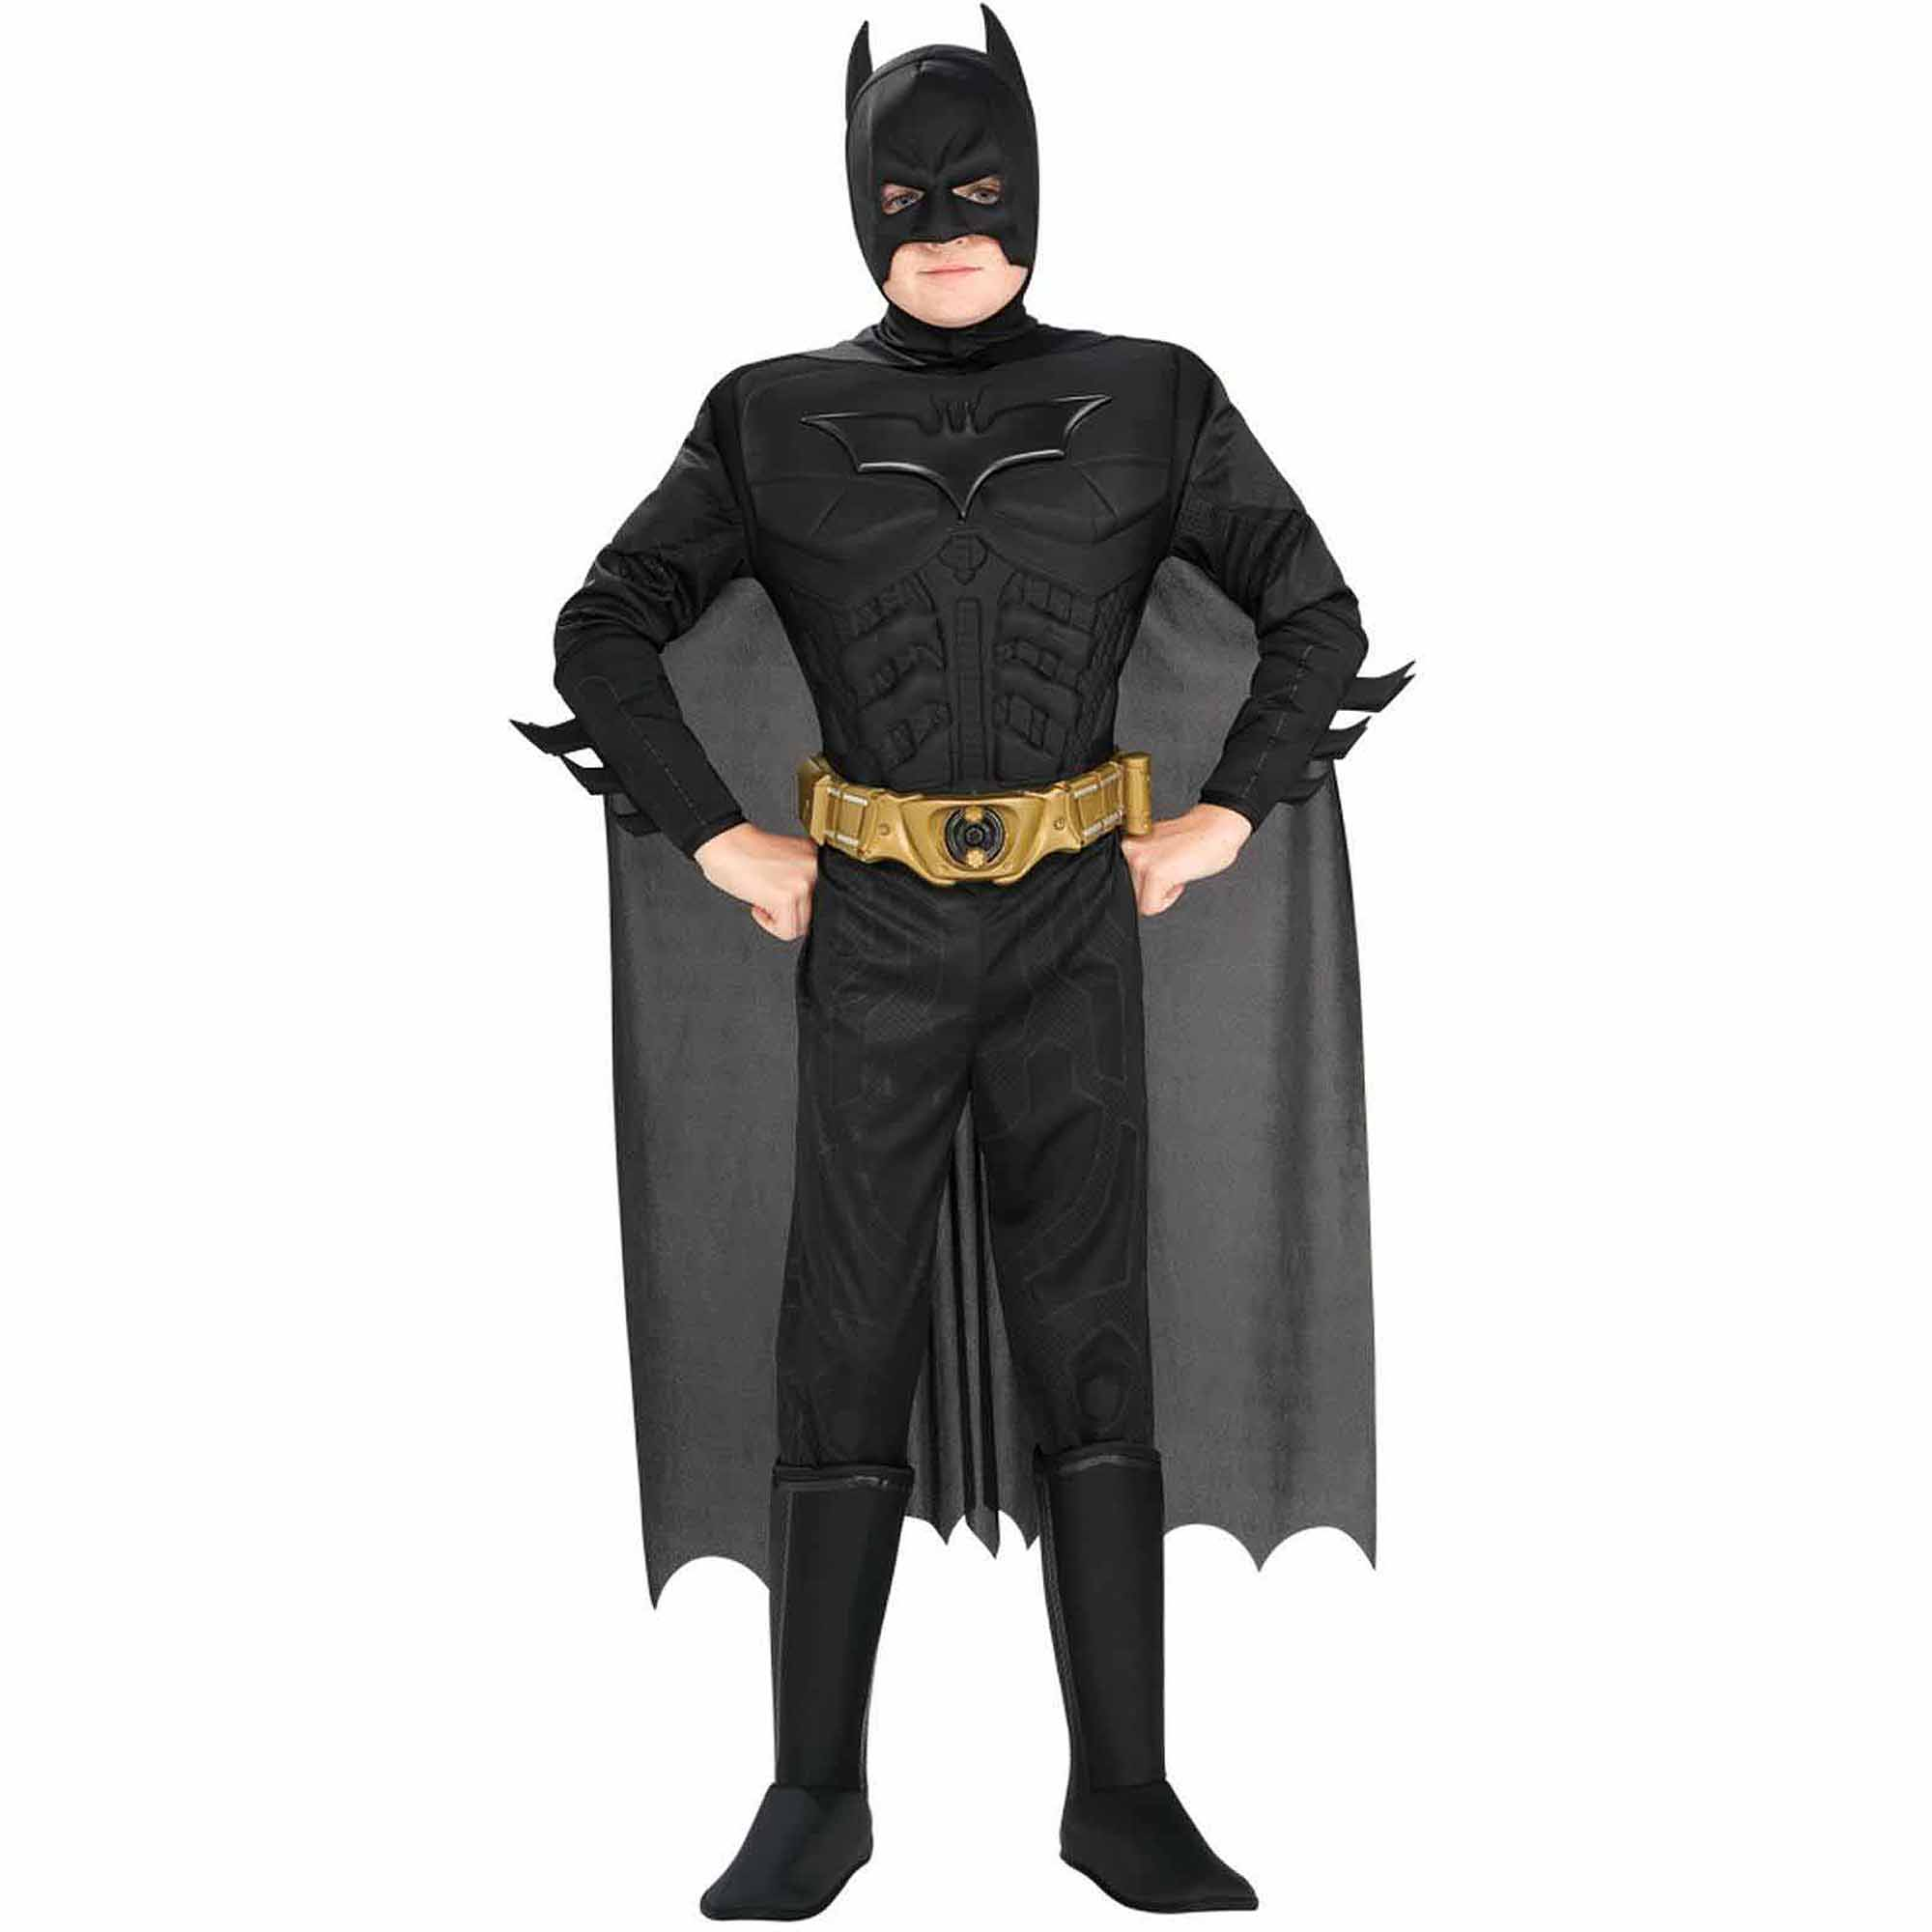 Batman The Dark Knight Rises Deluxe Muscle Chest Child Halloween Costume